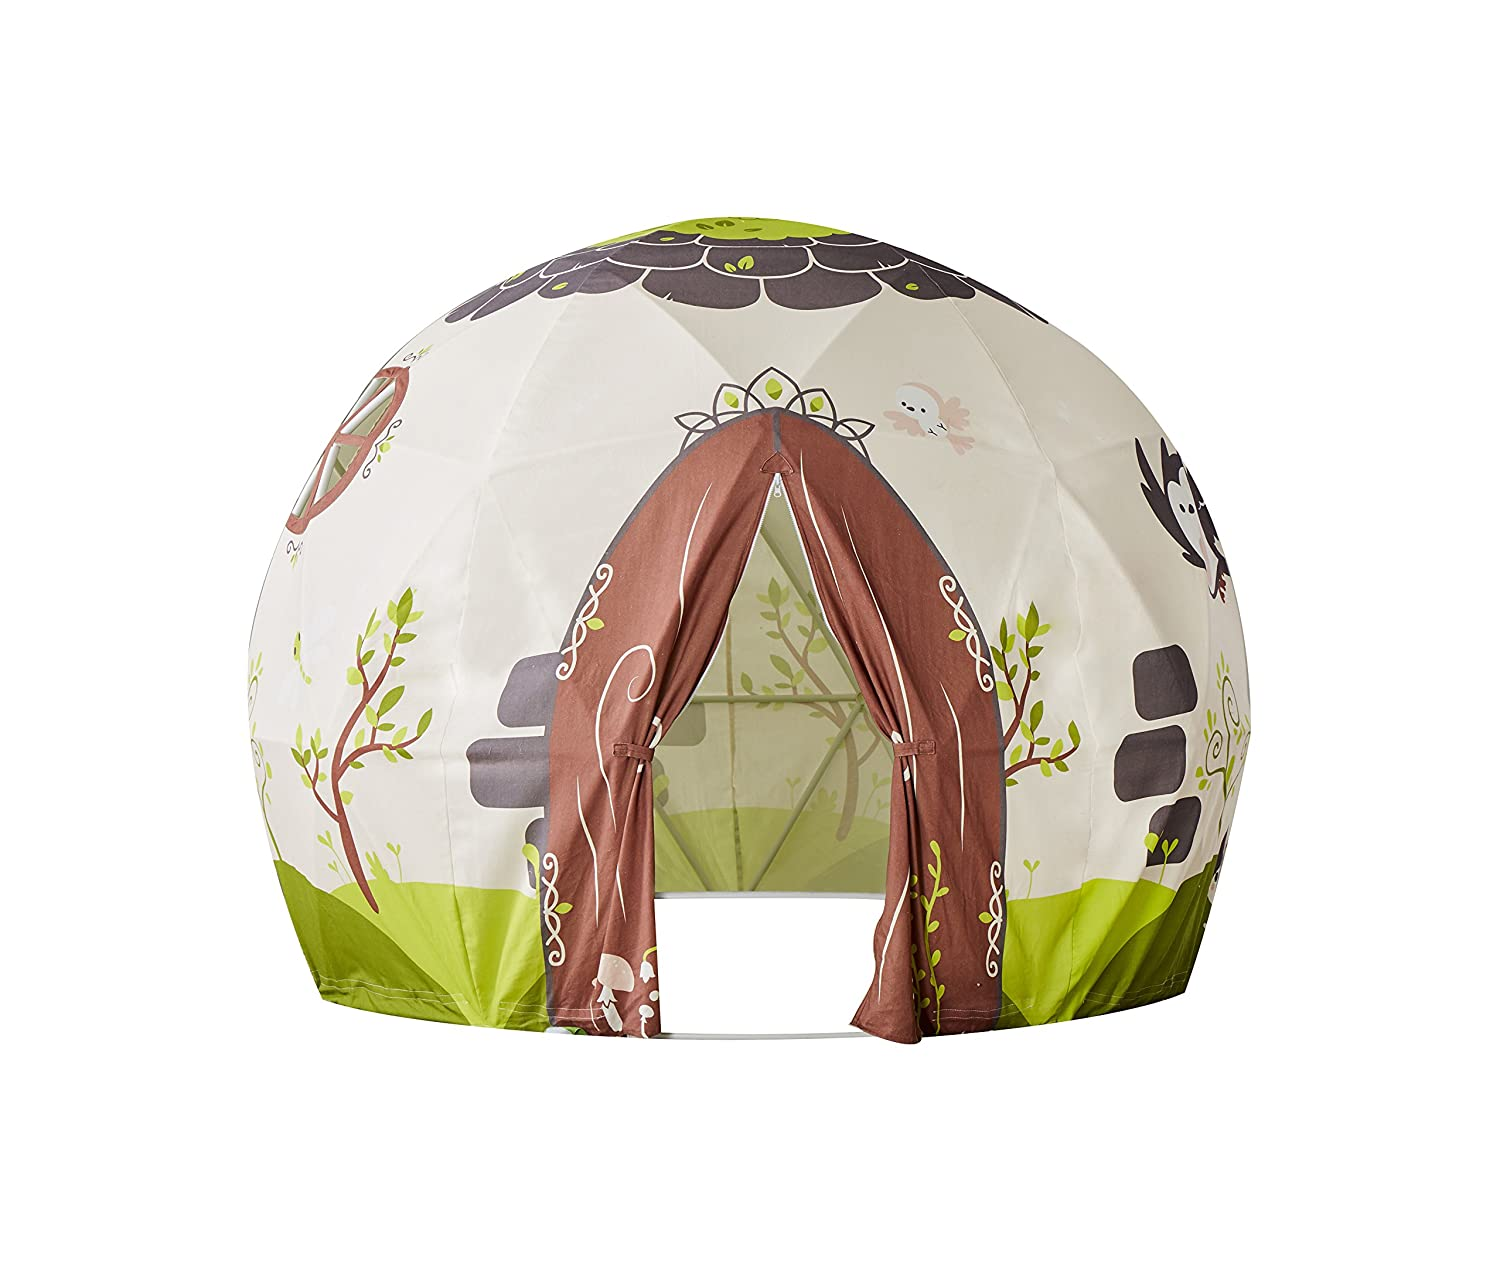 Asweets Fairy House Play Tent Toy(10108004)